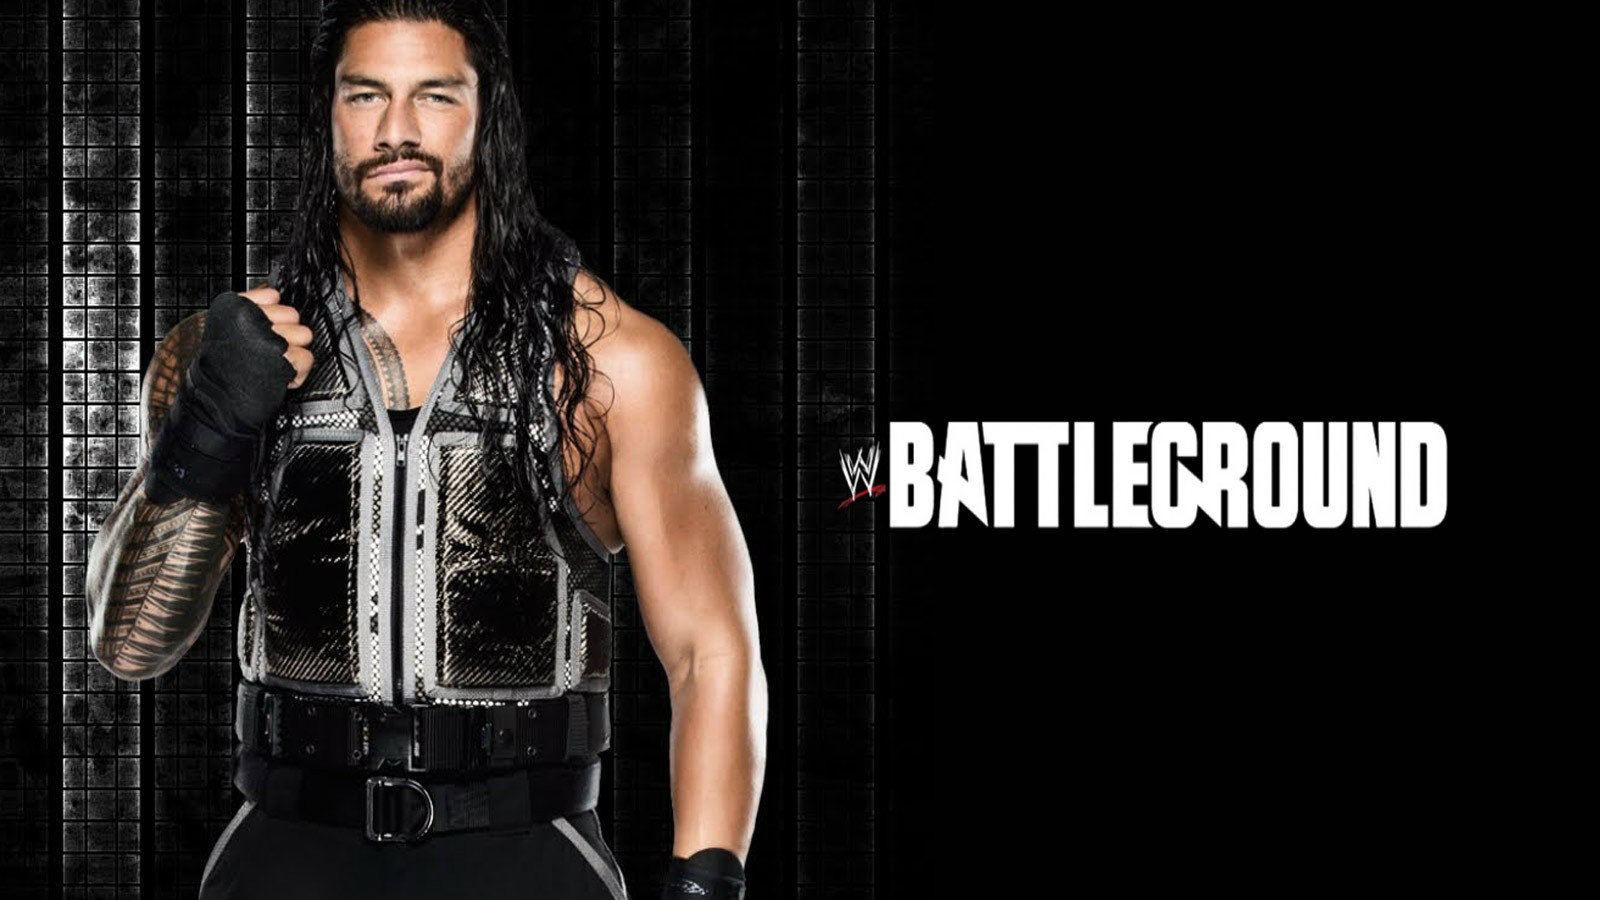 WWE Battleground Roman Reigns Photo Most HD Wallpapers Pictures 1600x900